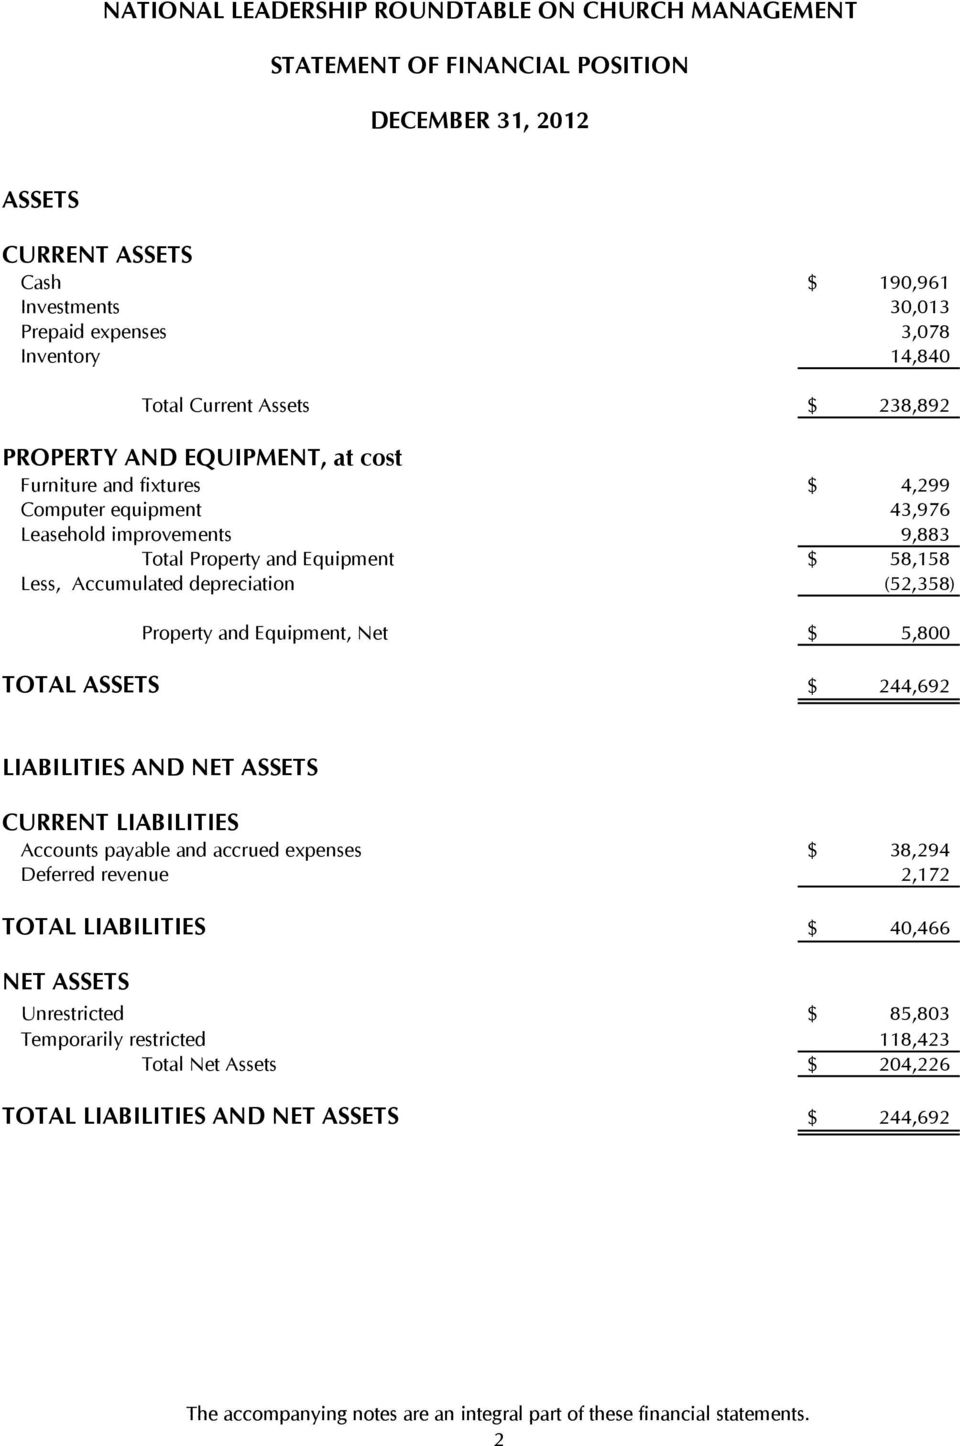 $ 5,800 TOTAL ASSETS $ 244,692 LIABILITIES AND NET ASSETS CURRENT LIABILITIES Accounts payable and accrued expenses $ 38,294 Deferred revenue 2,172 TOTAL LIABILITIES $ 40,466 NET ASSETS